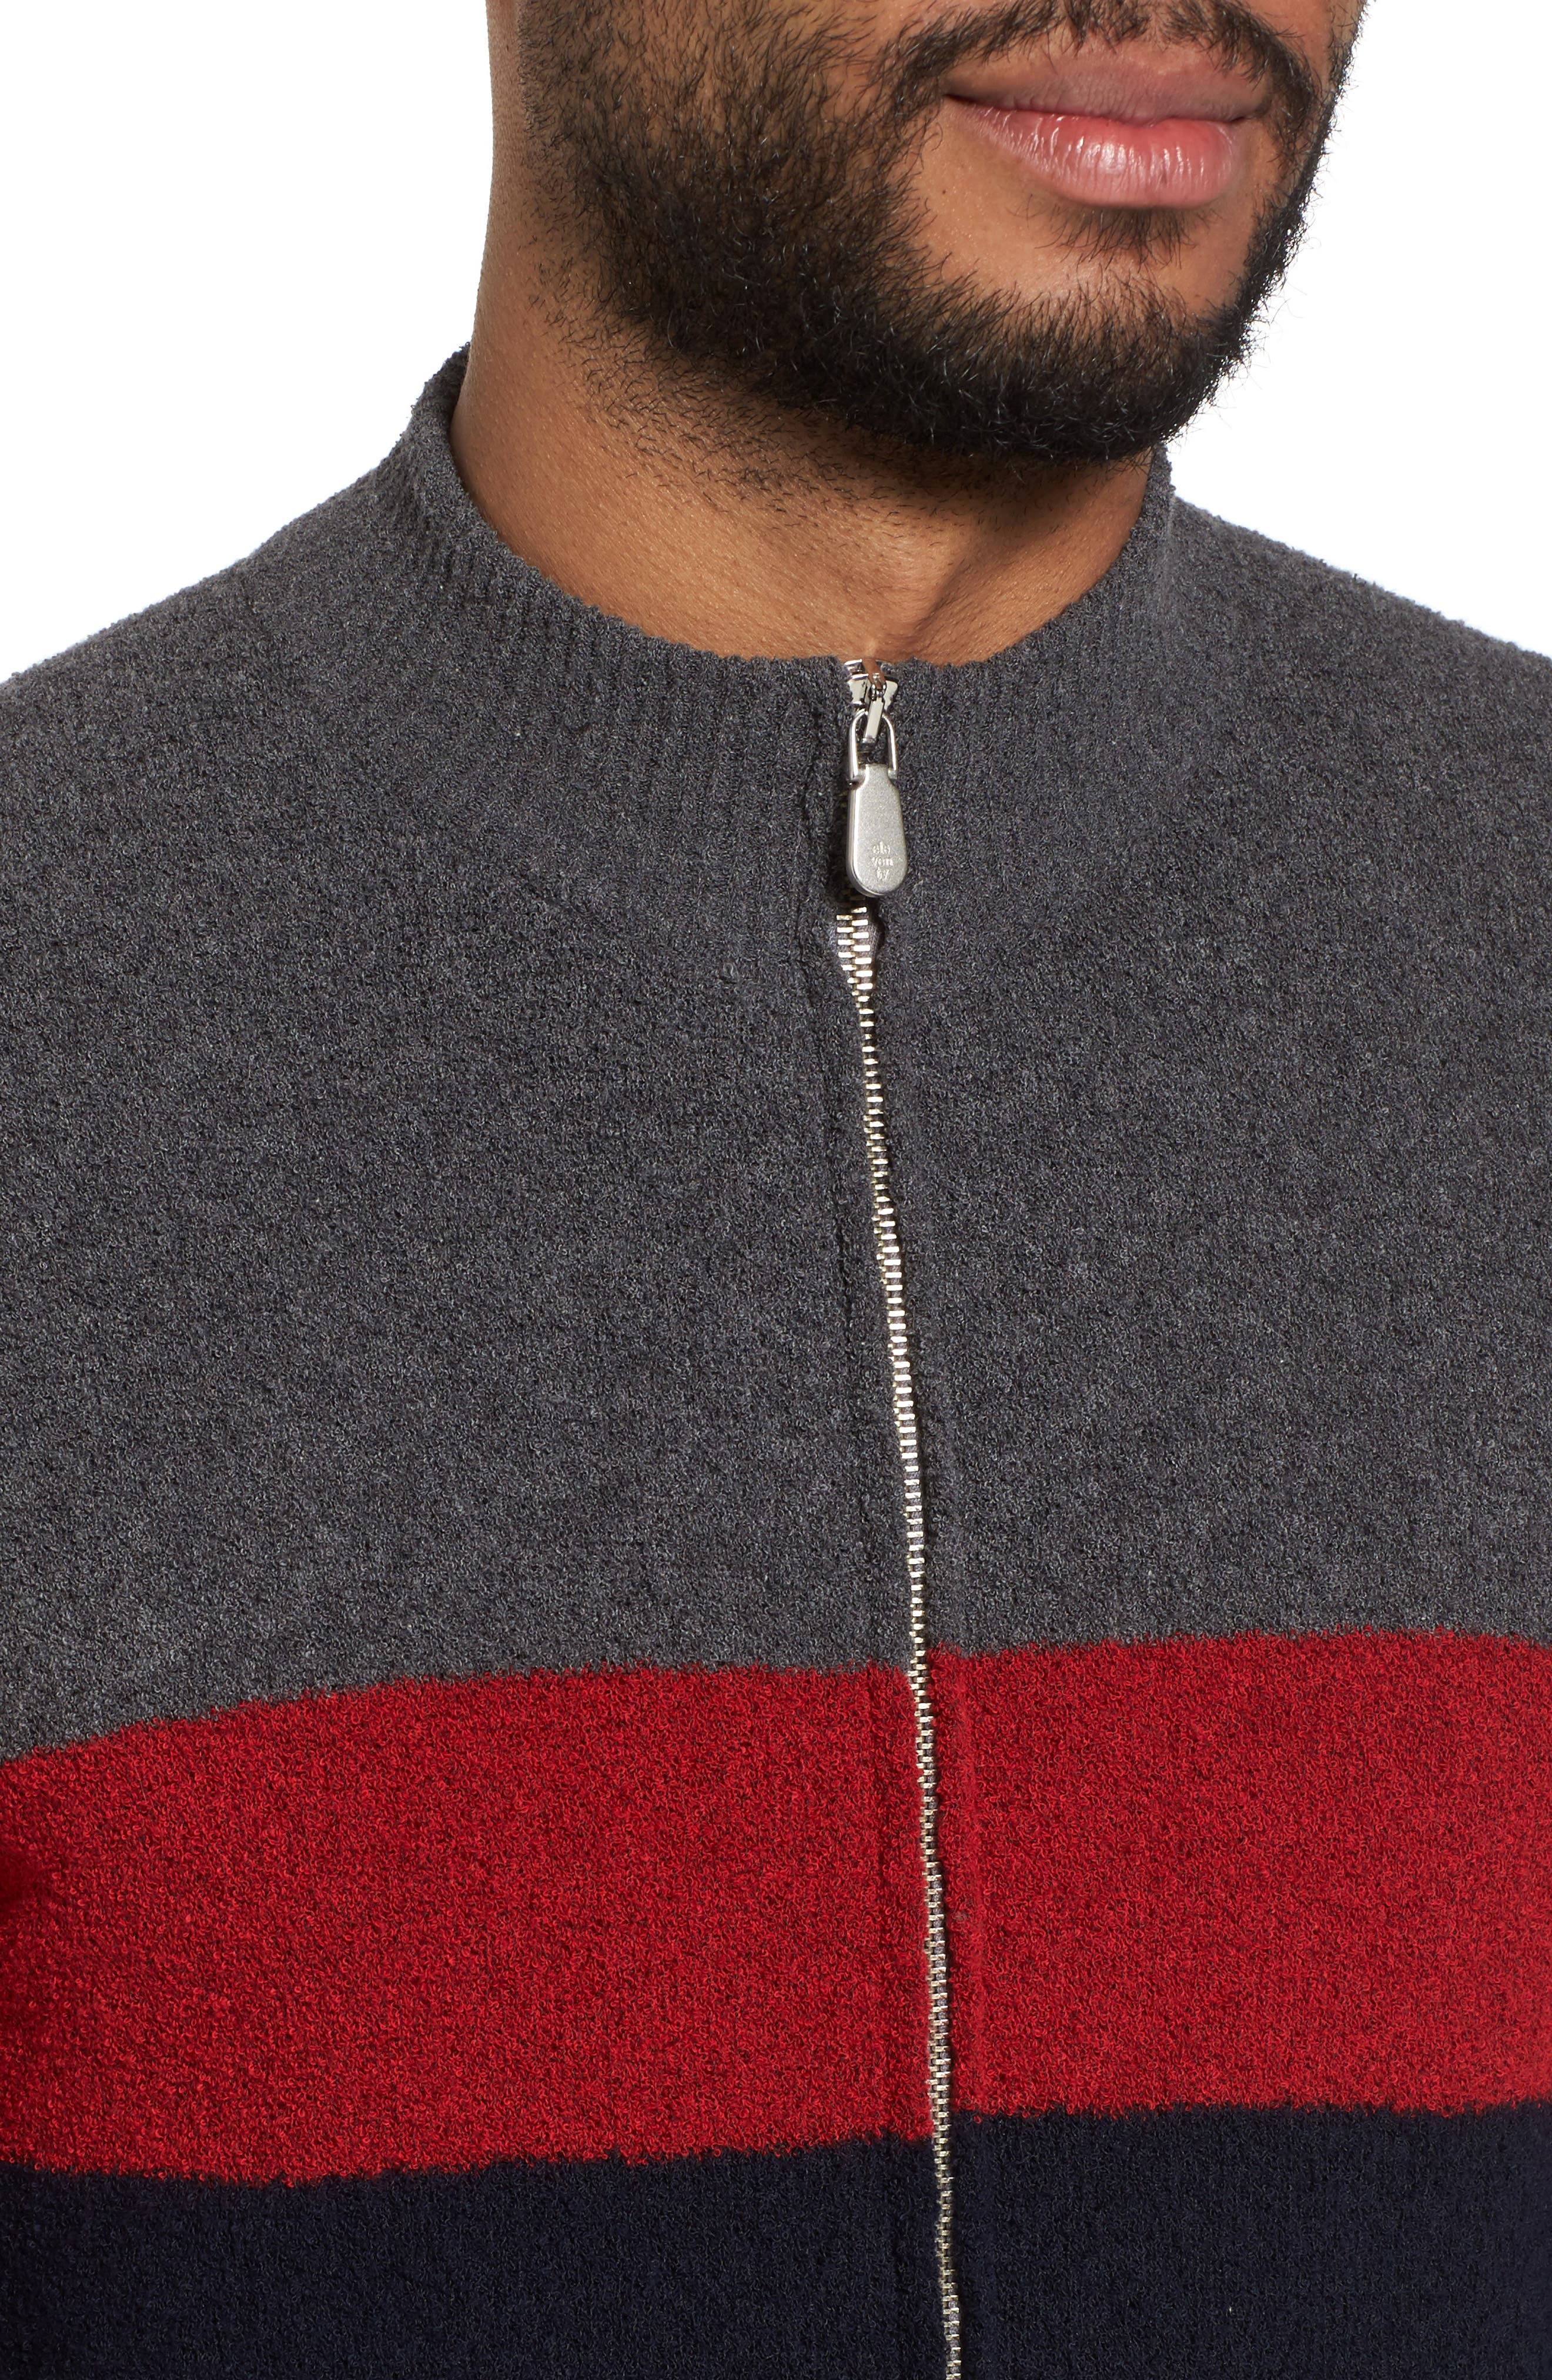 Colorblock Zip Sweater,                             Alternate thumbnail 4, color,                             Navy/ Red